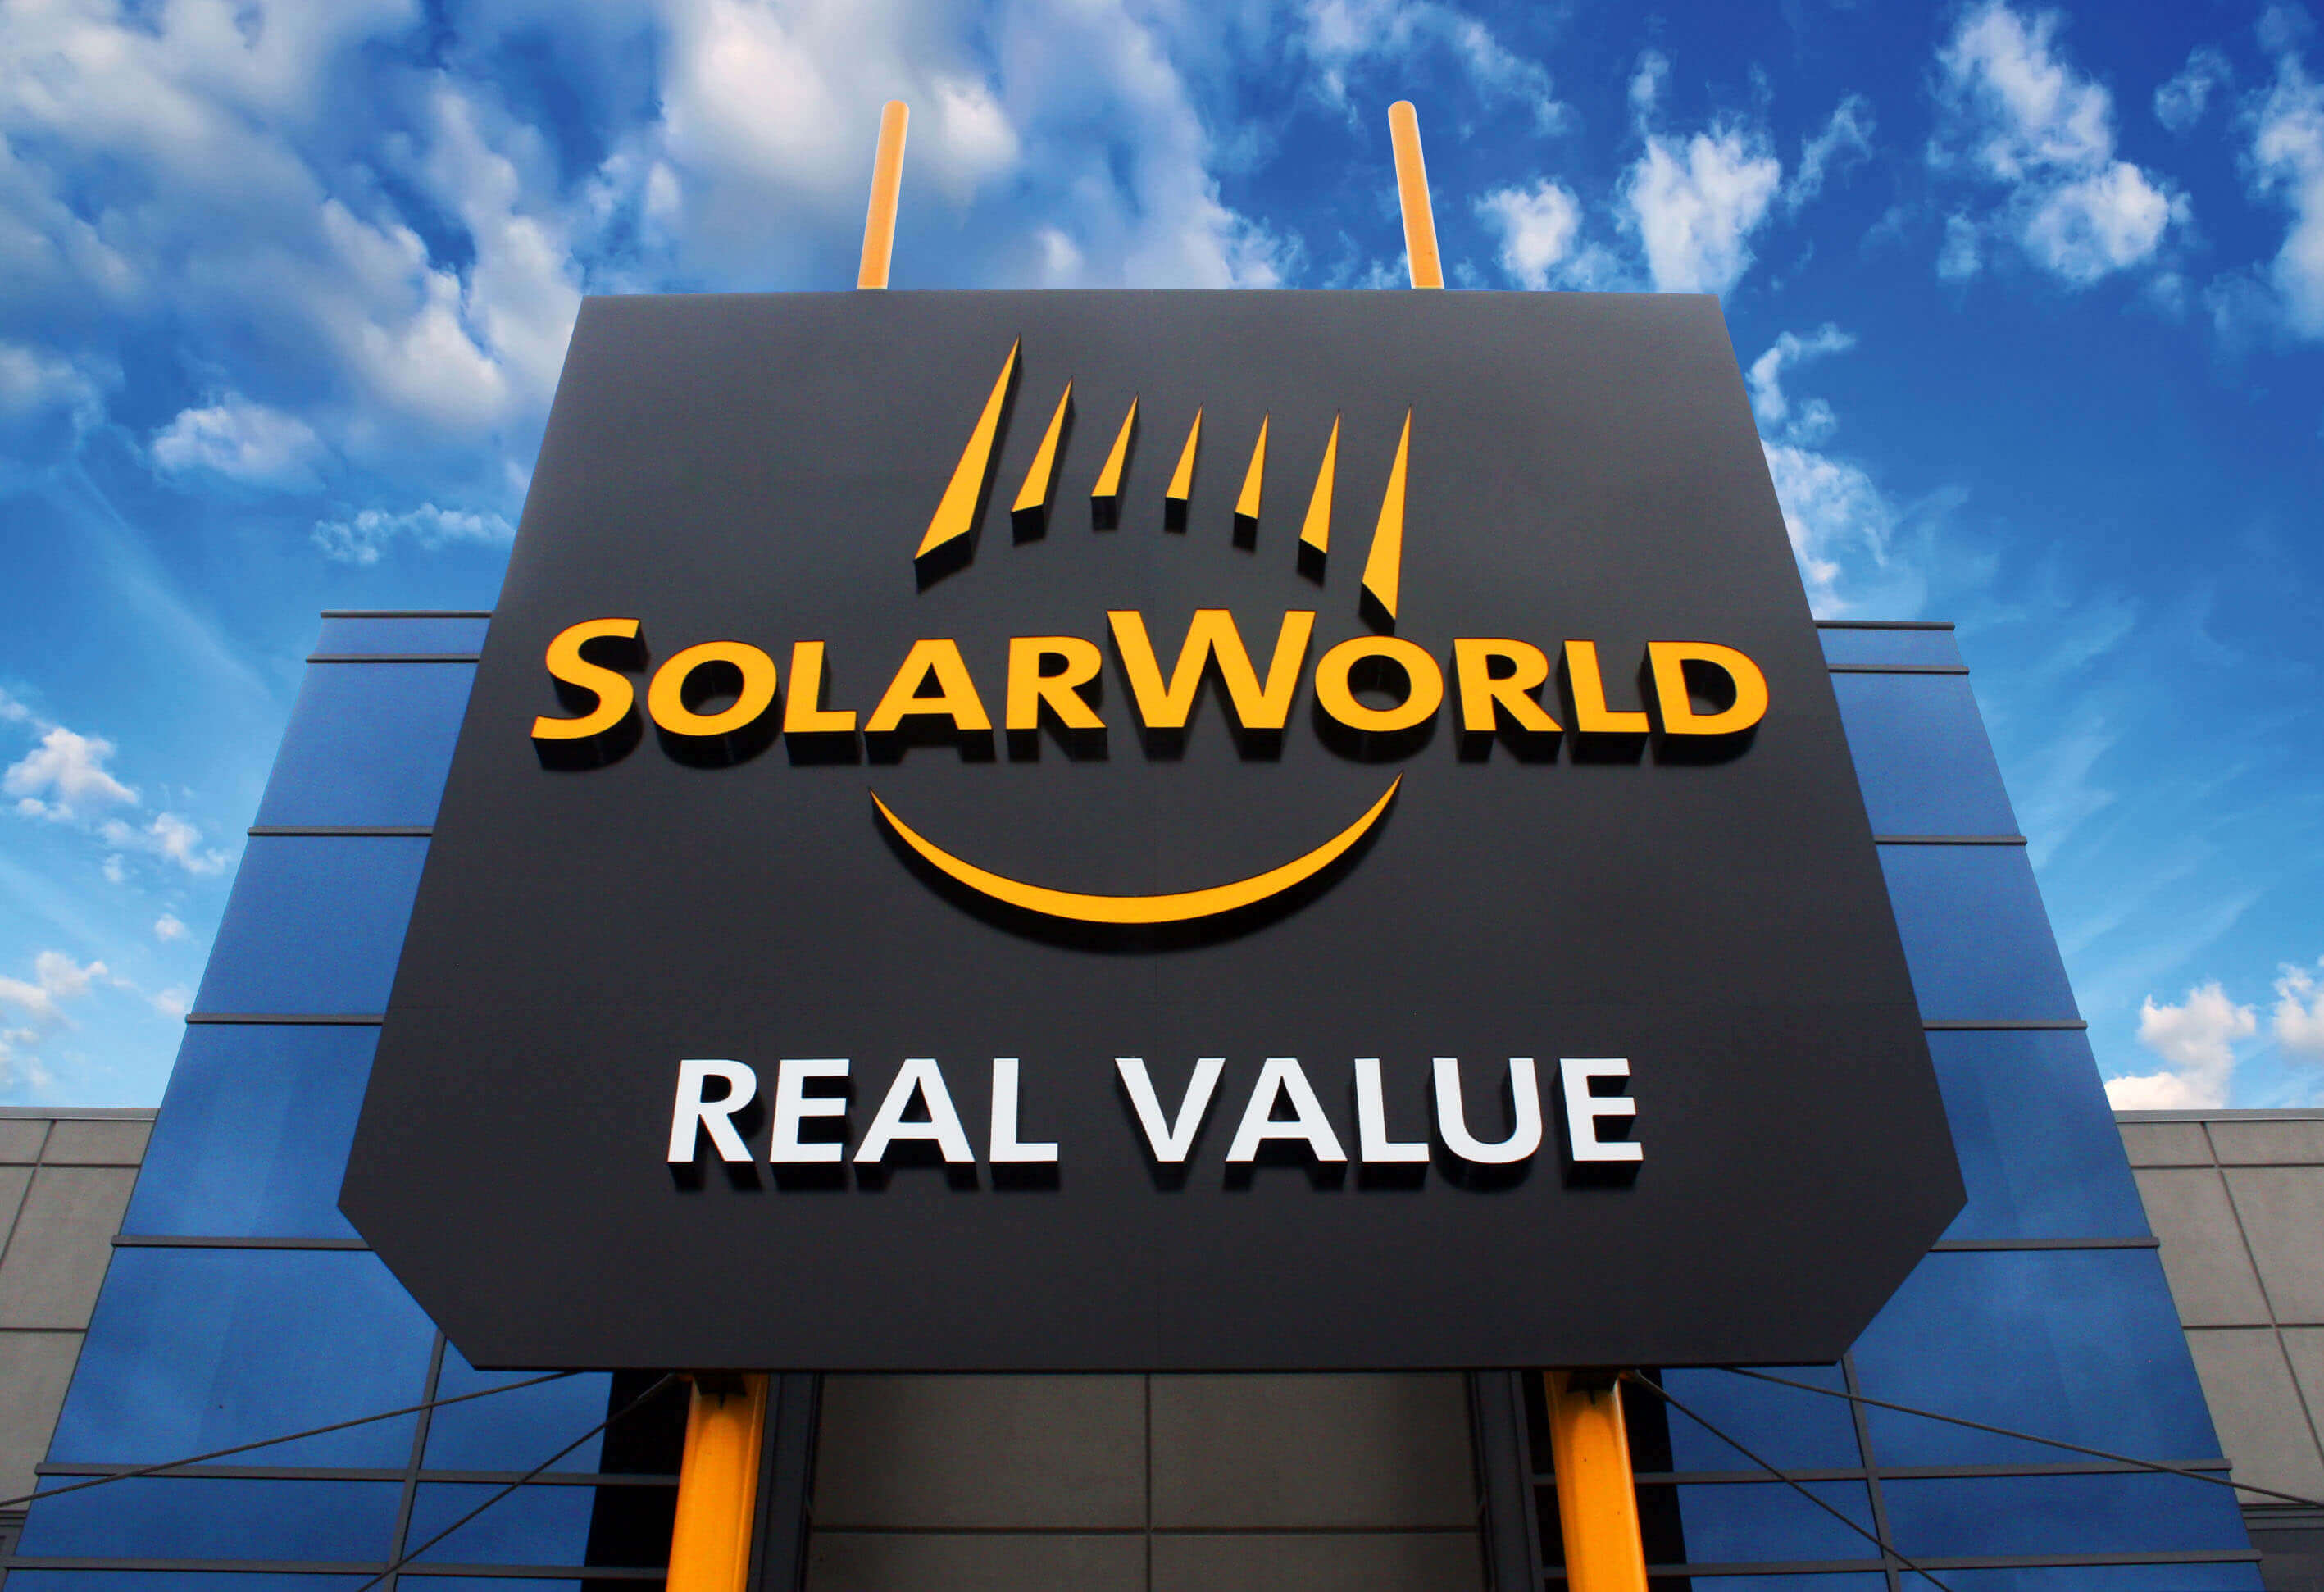 solarworld-hillsboro-oregon-1-lg SolarWorld Americas Initiates Mass Layoff, Announces Cash Infusion